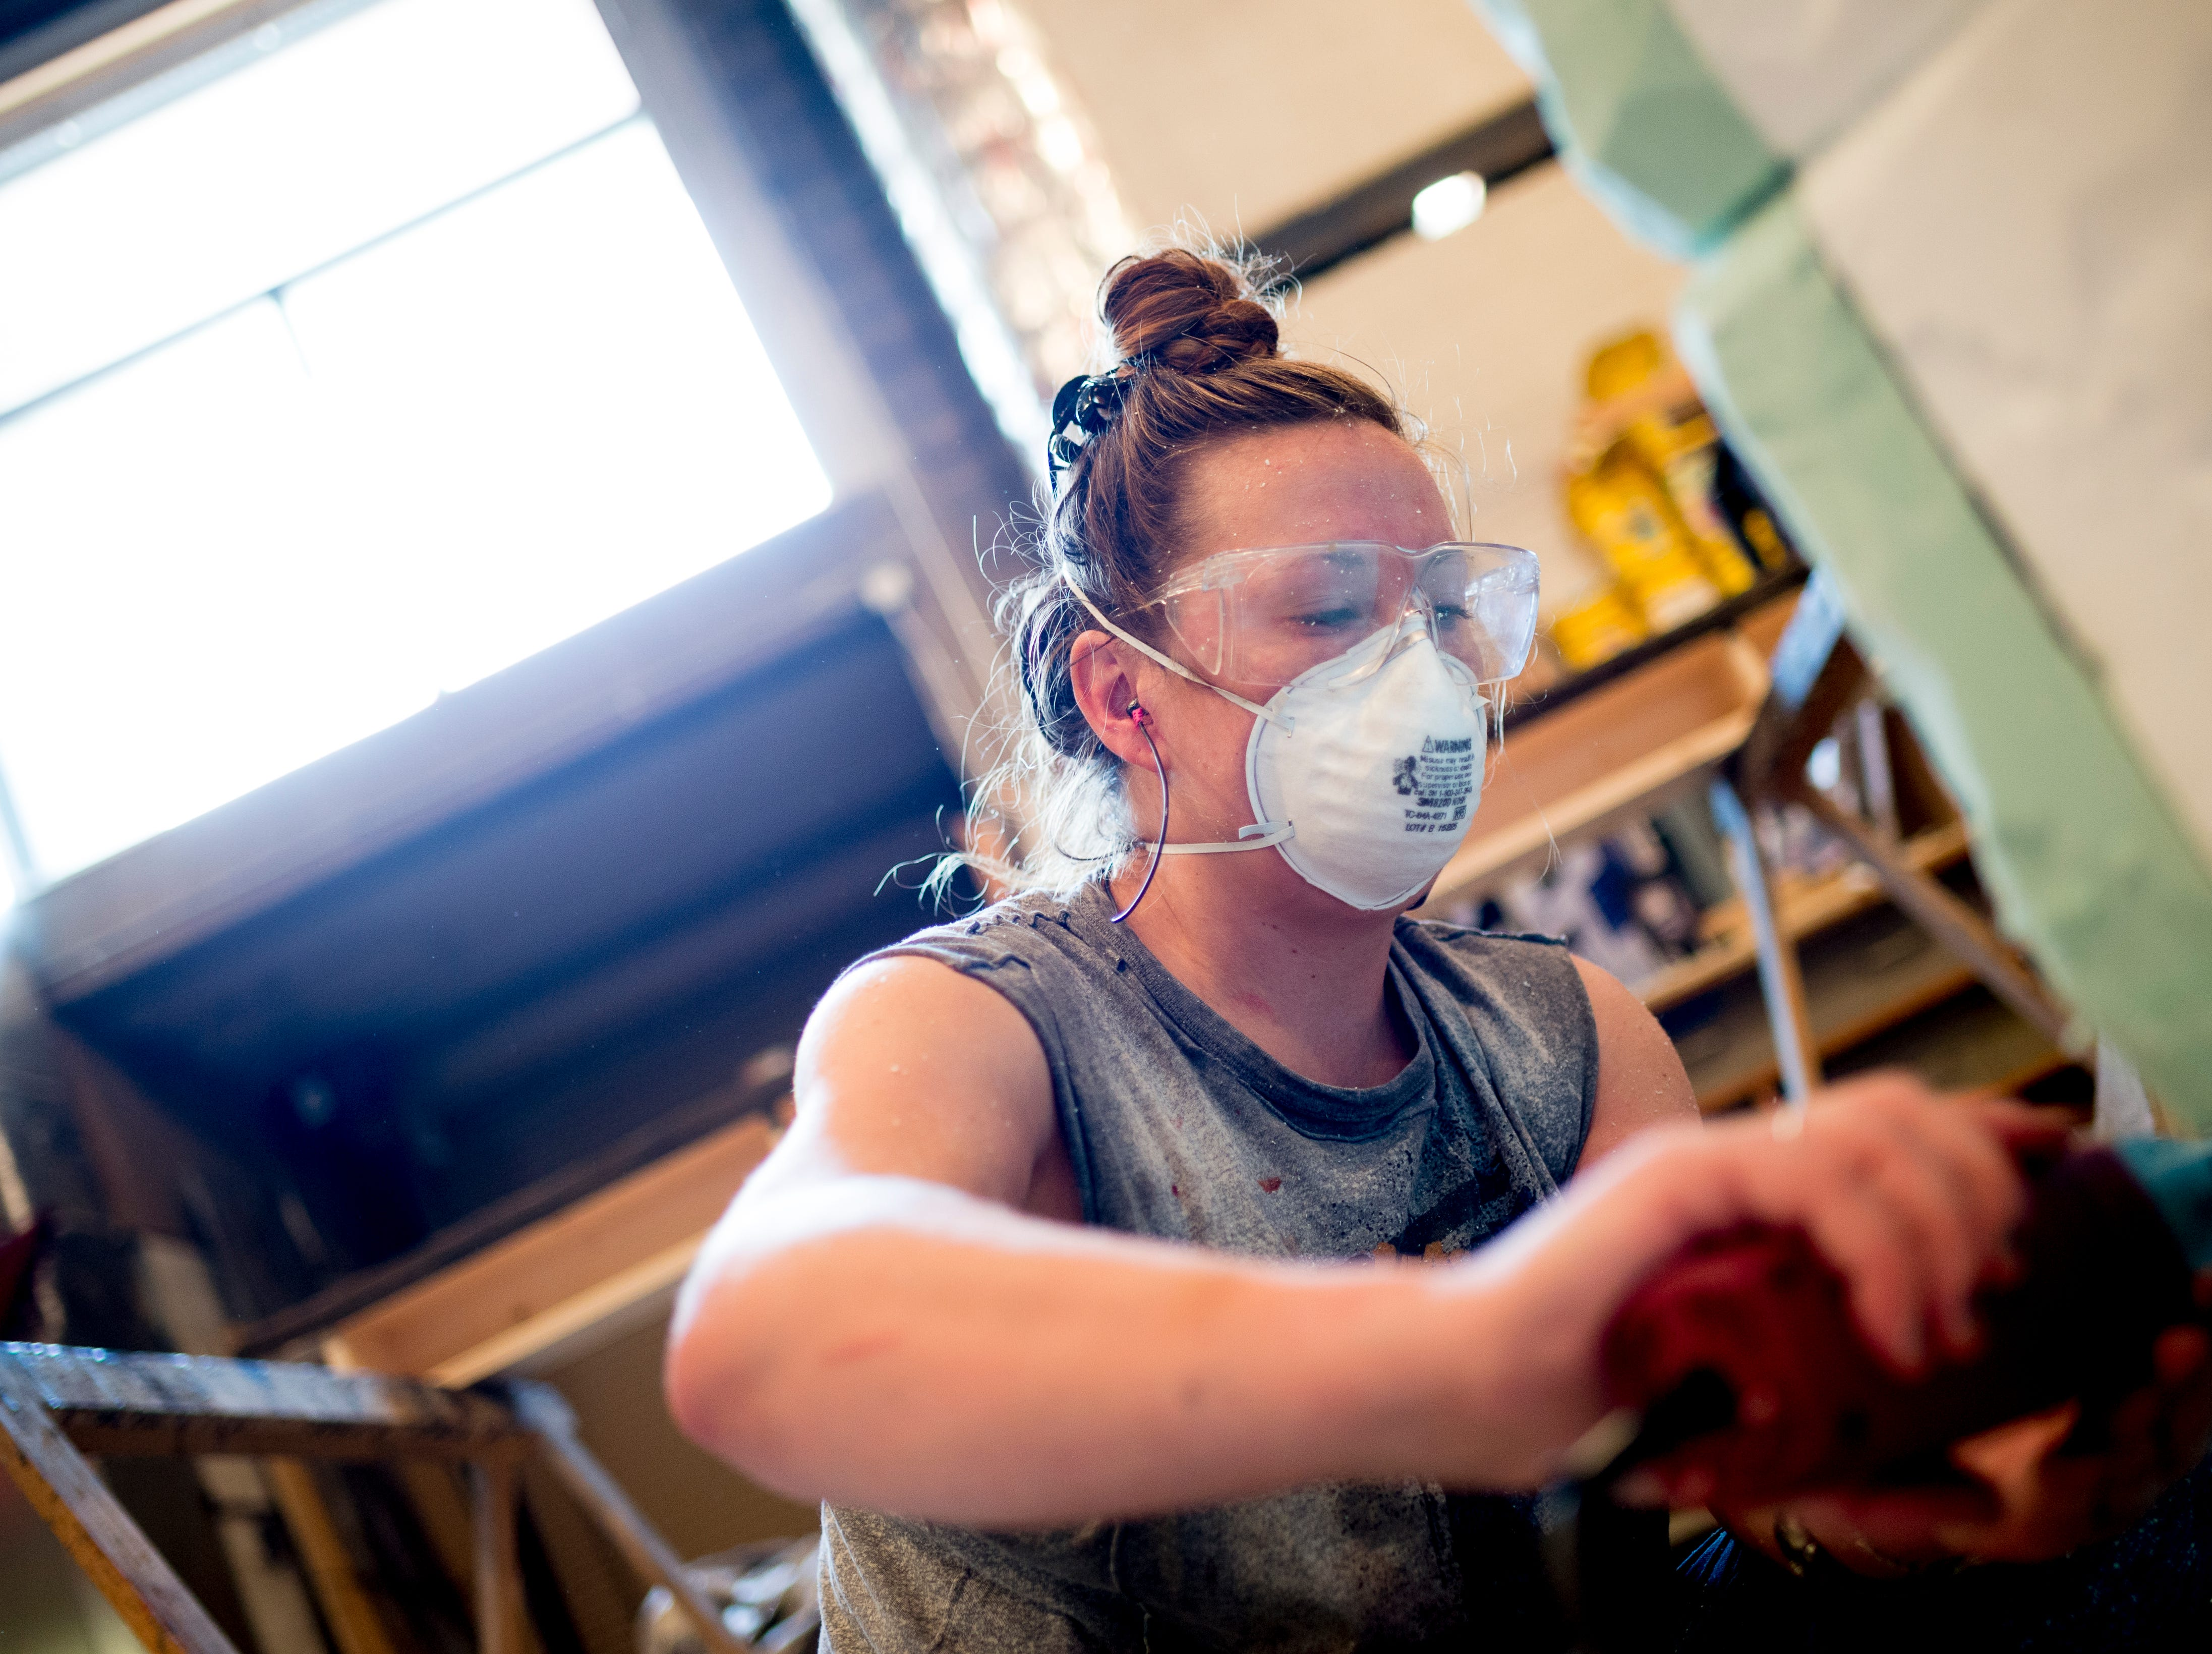 Katie Moseley works on crafting a stone chimney ahead of opening day for Candide at the Clarence Brown Theatre  in Knoxville, Tennessee on Tuesday, August 14, 2018. Leonard BernsteinÕs acclaimed operetta, Candide, is to open Friday, August 31, with previews beginning August 29.